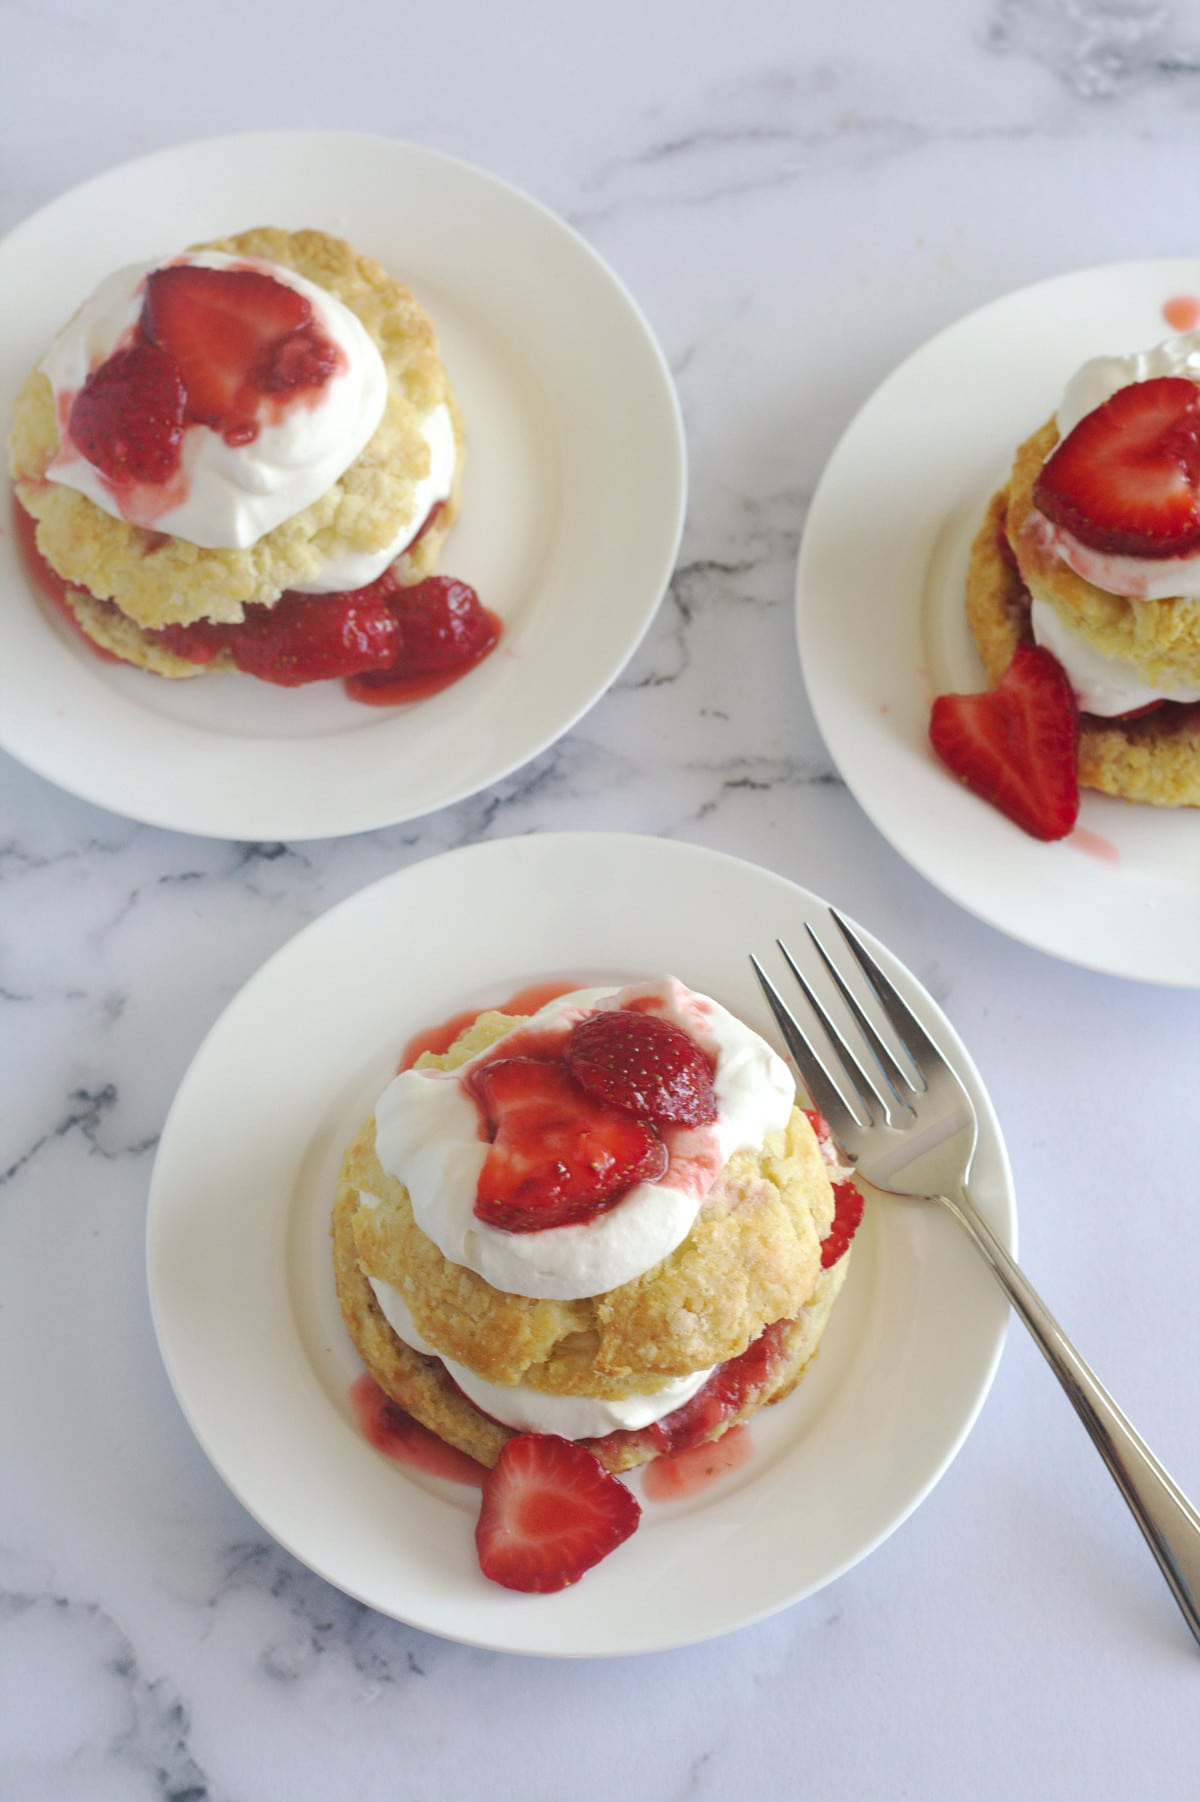 An above view of strawberry shortcakes on plates.  The bottom one has a fork on the plate.